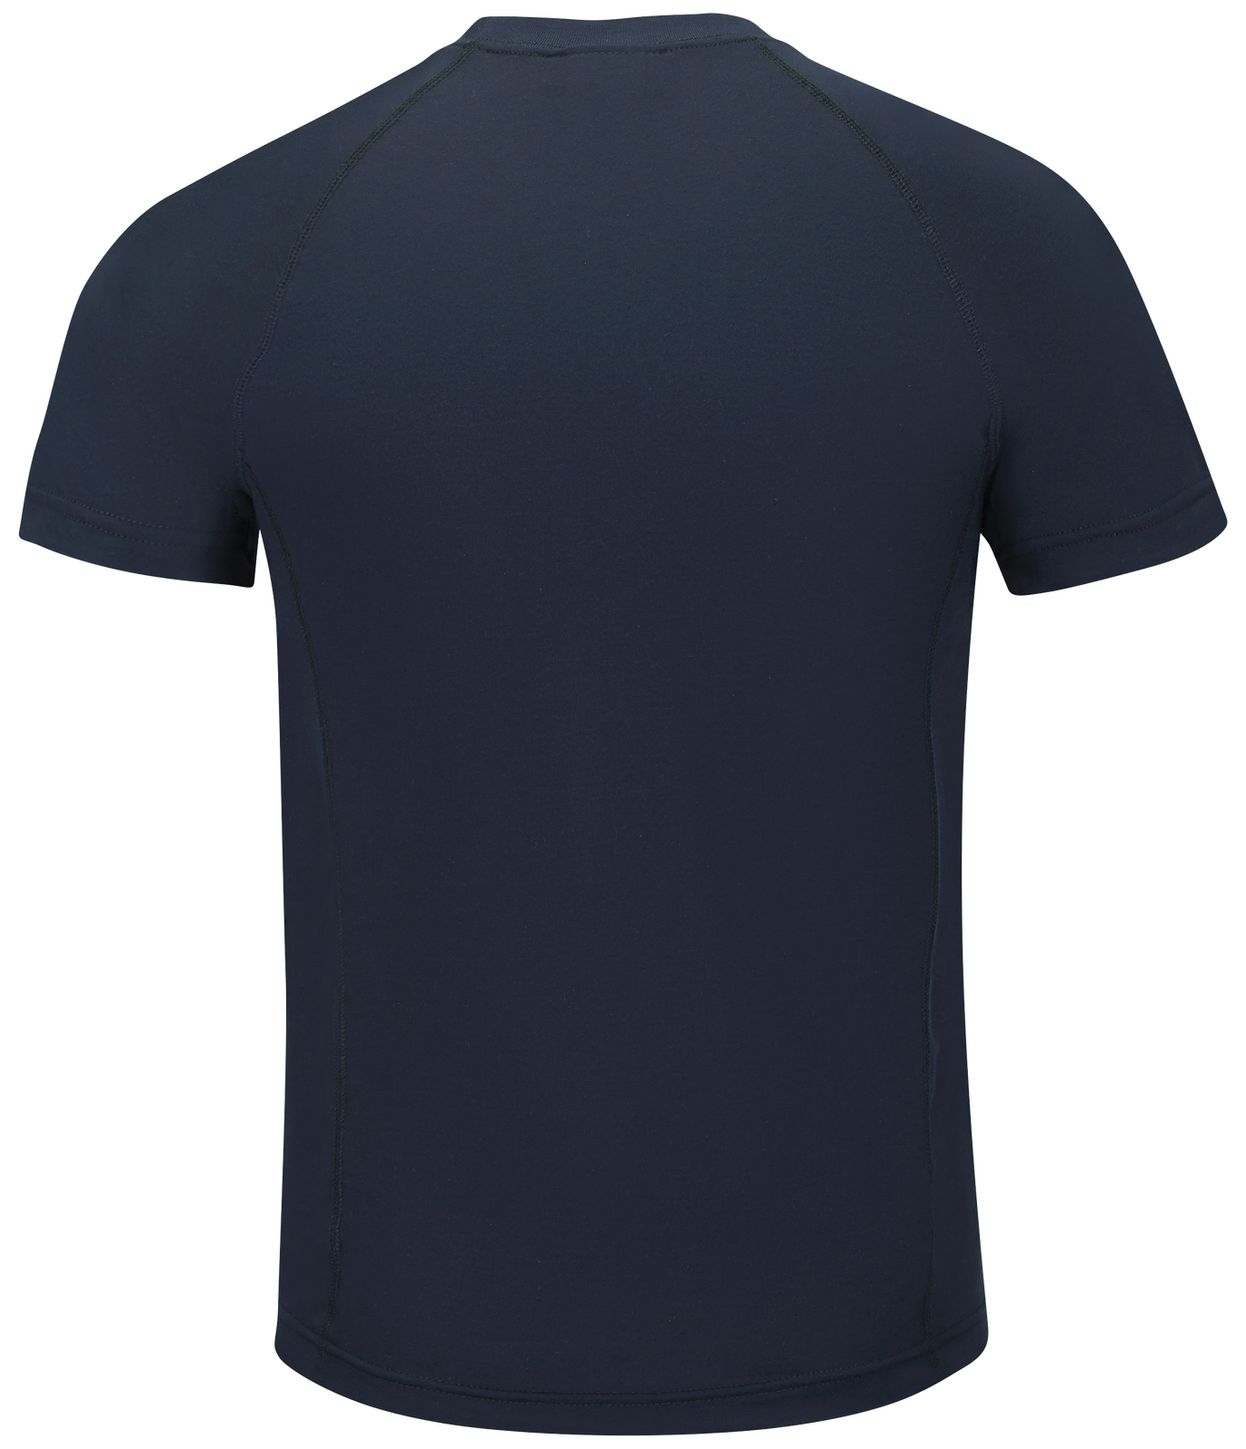 Workrite FR Station Wear Tee FT36, Base Layer, Athletic Style Navy Back